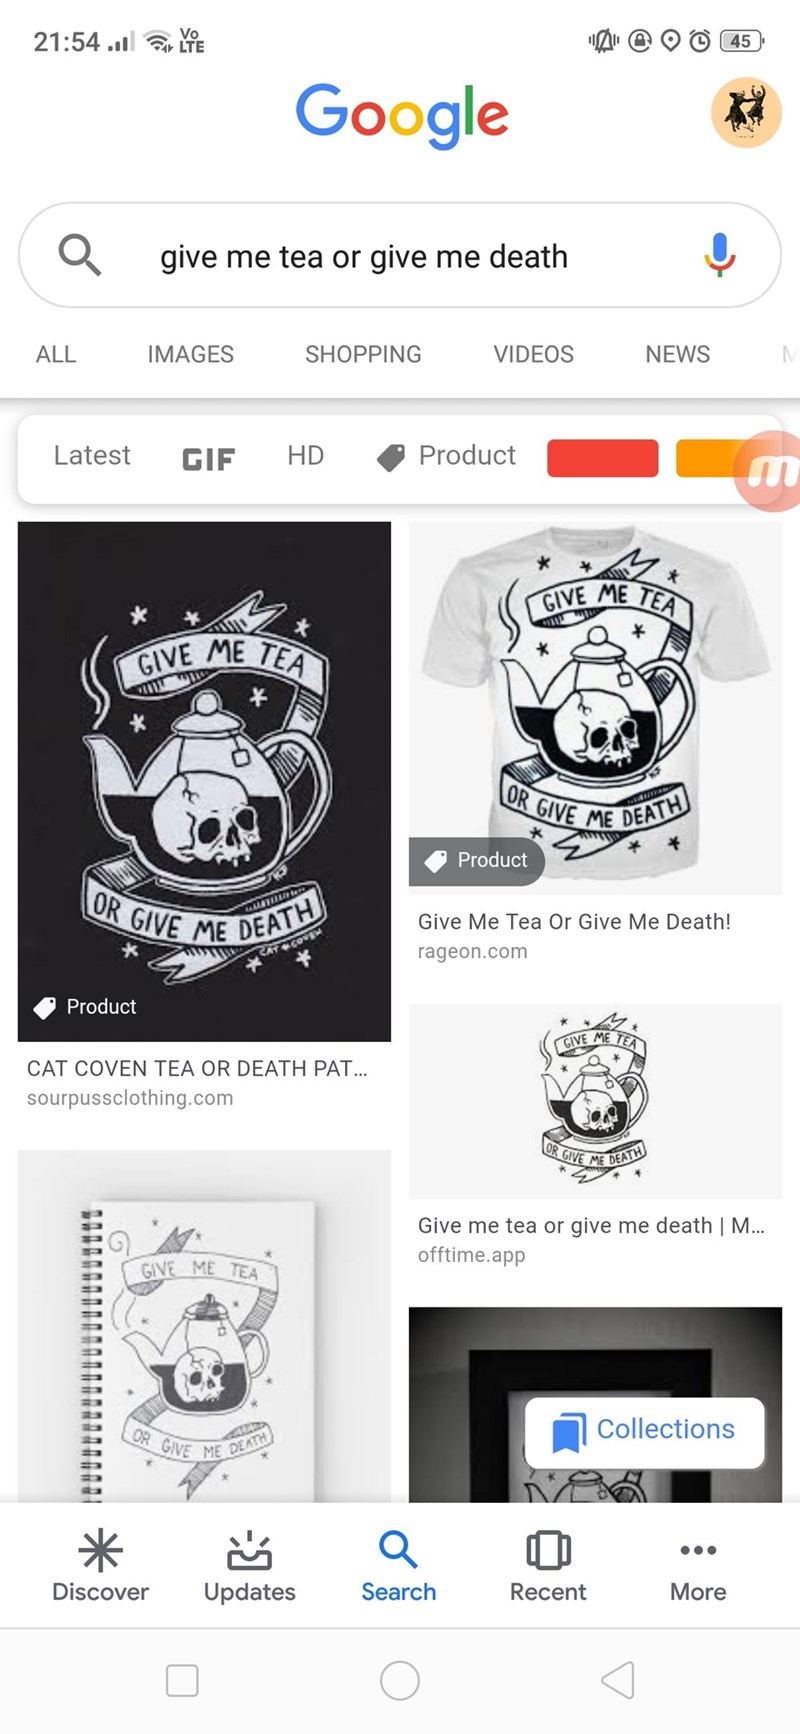 Text - 21:54. LTE Vo O45 Google give me tea or give me death IMAGES SHOPPING VIDEOS NEWS ALL Product HD Latest GIF GIVE ME TEA GIVE ME TEA OR GIVE ME DEATH Product OR GIVE ME DEATH Give Me Tea Or Give Me Death! rageon.com Product GIVE ME TEA CAT COVEN TEA OR DEATH PAT... sourpussclothing.com OR GIVE ME DEATH Give me tea or give me death | M... offtime.app GIVE ME TEA Collections OR GIVE ME DEATH Discover Updates Search Recent More